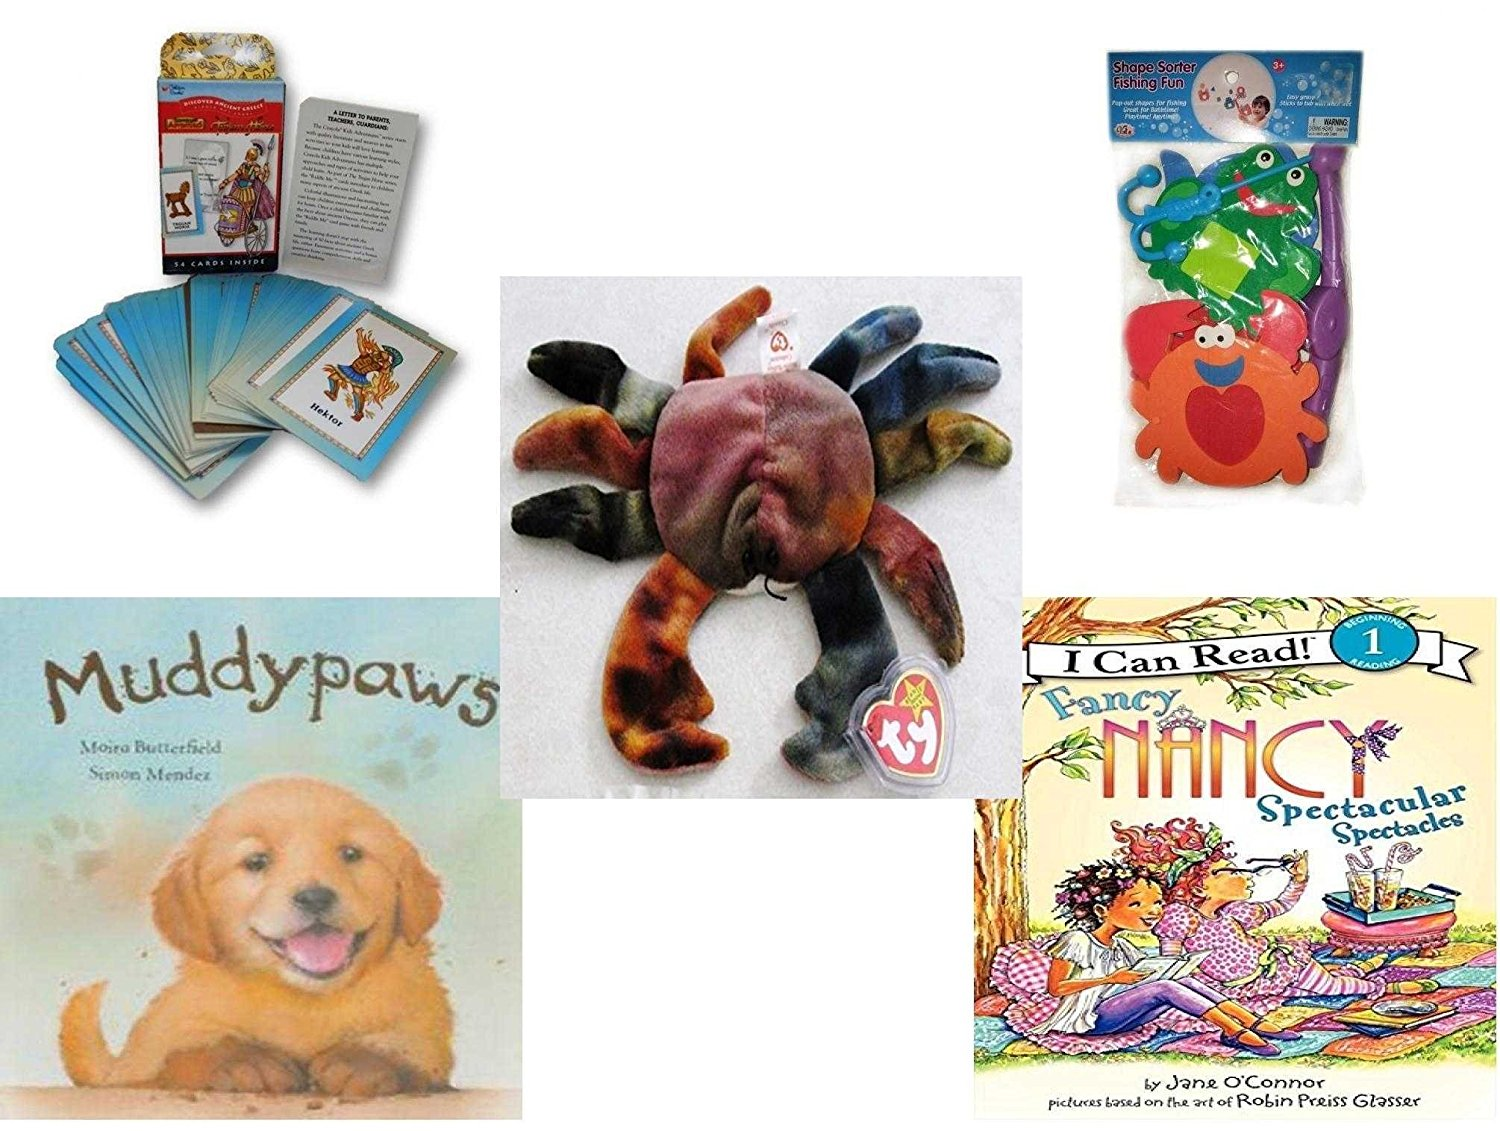 Children's Gift Bundle - Ages 3-5 [5 Piece] - Discover Ancient Greece Riddle Me Playing Card Game - Shape Sorter Fishing Fun Bath Toy - Ty Teenie Beanie Baby - Claude the Crab - Muddypaws Hardcover